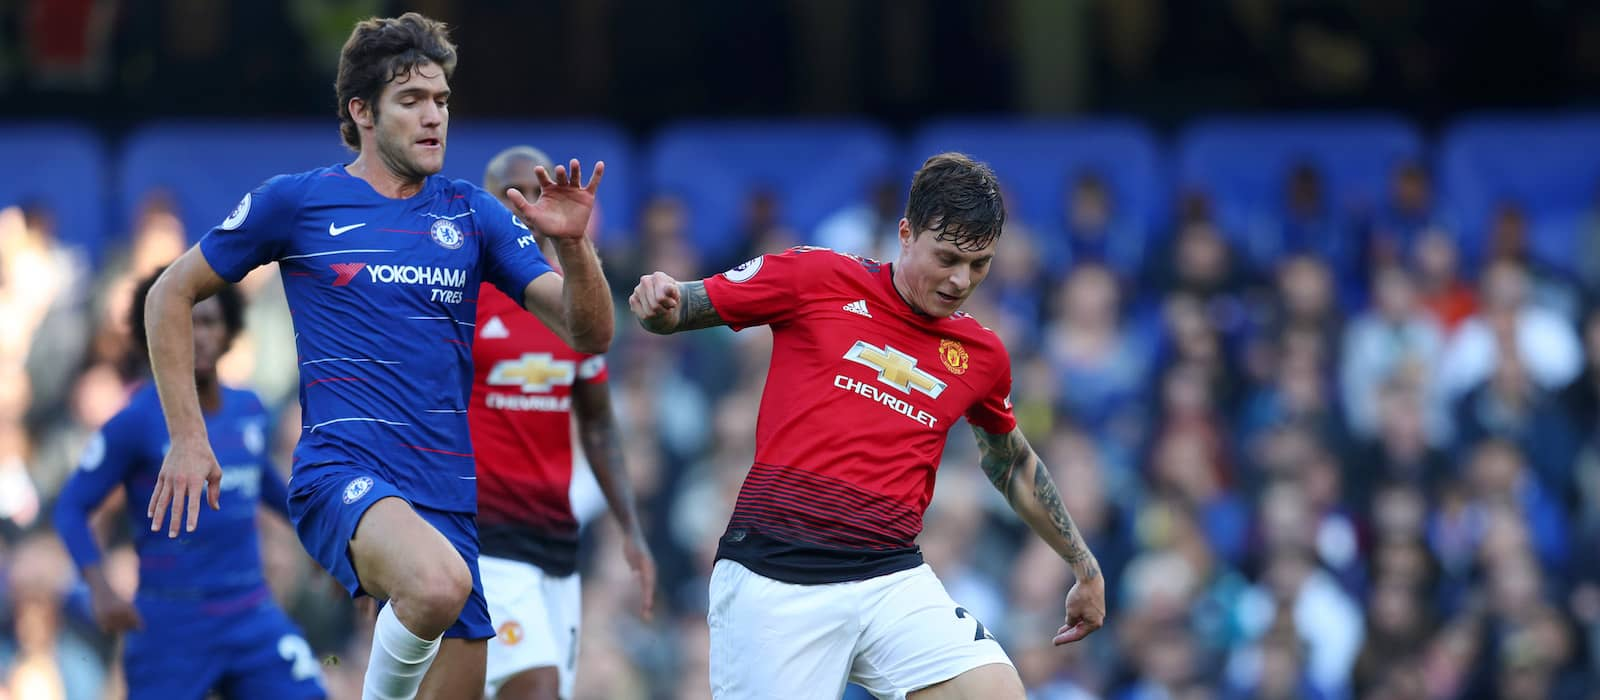 Victor Lindelof impresses for Manchester United against Everton with 86% pass accuracy